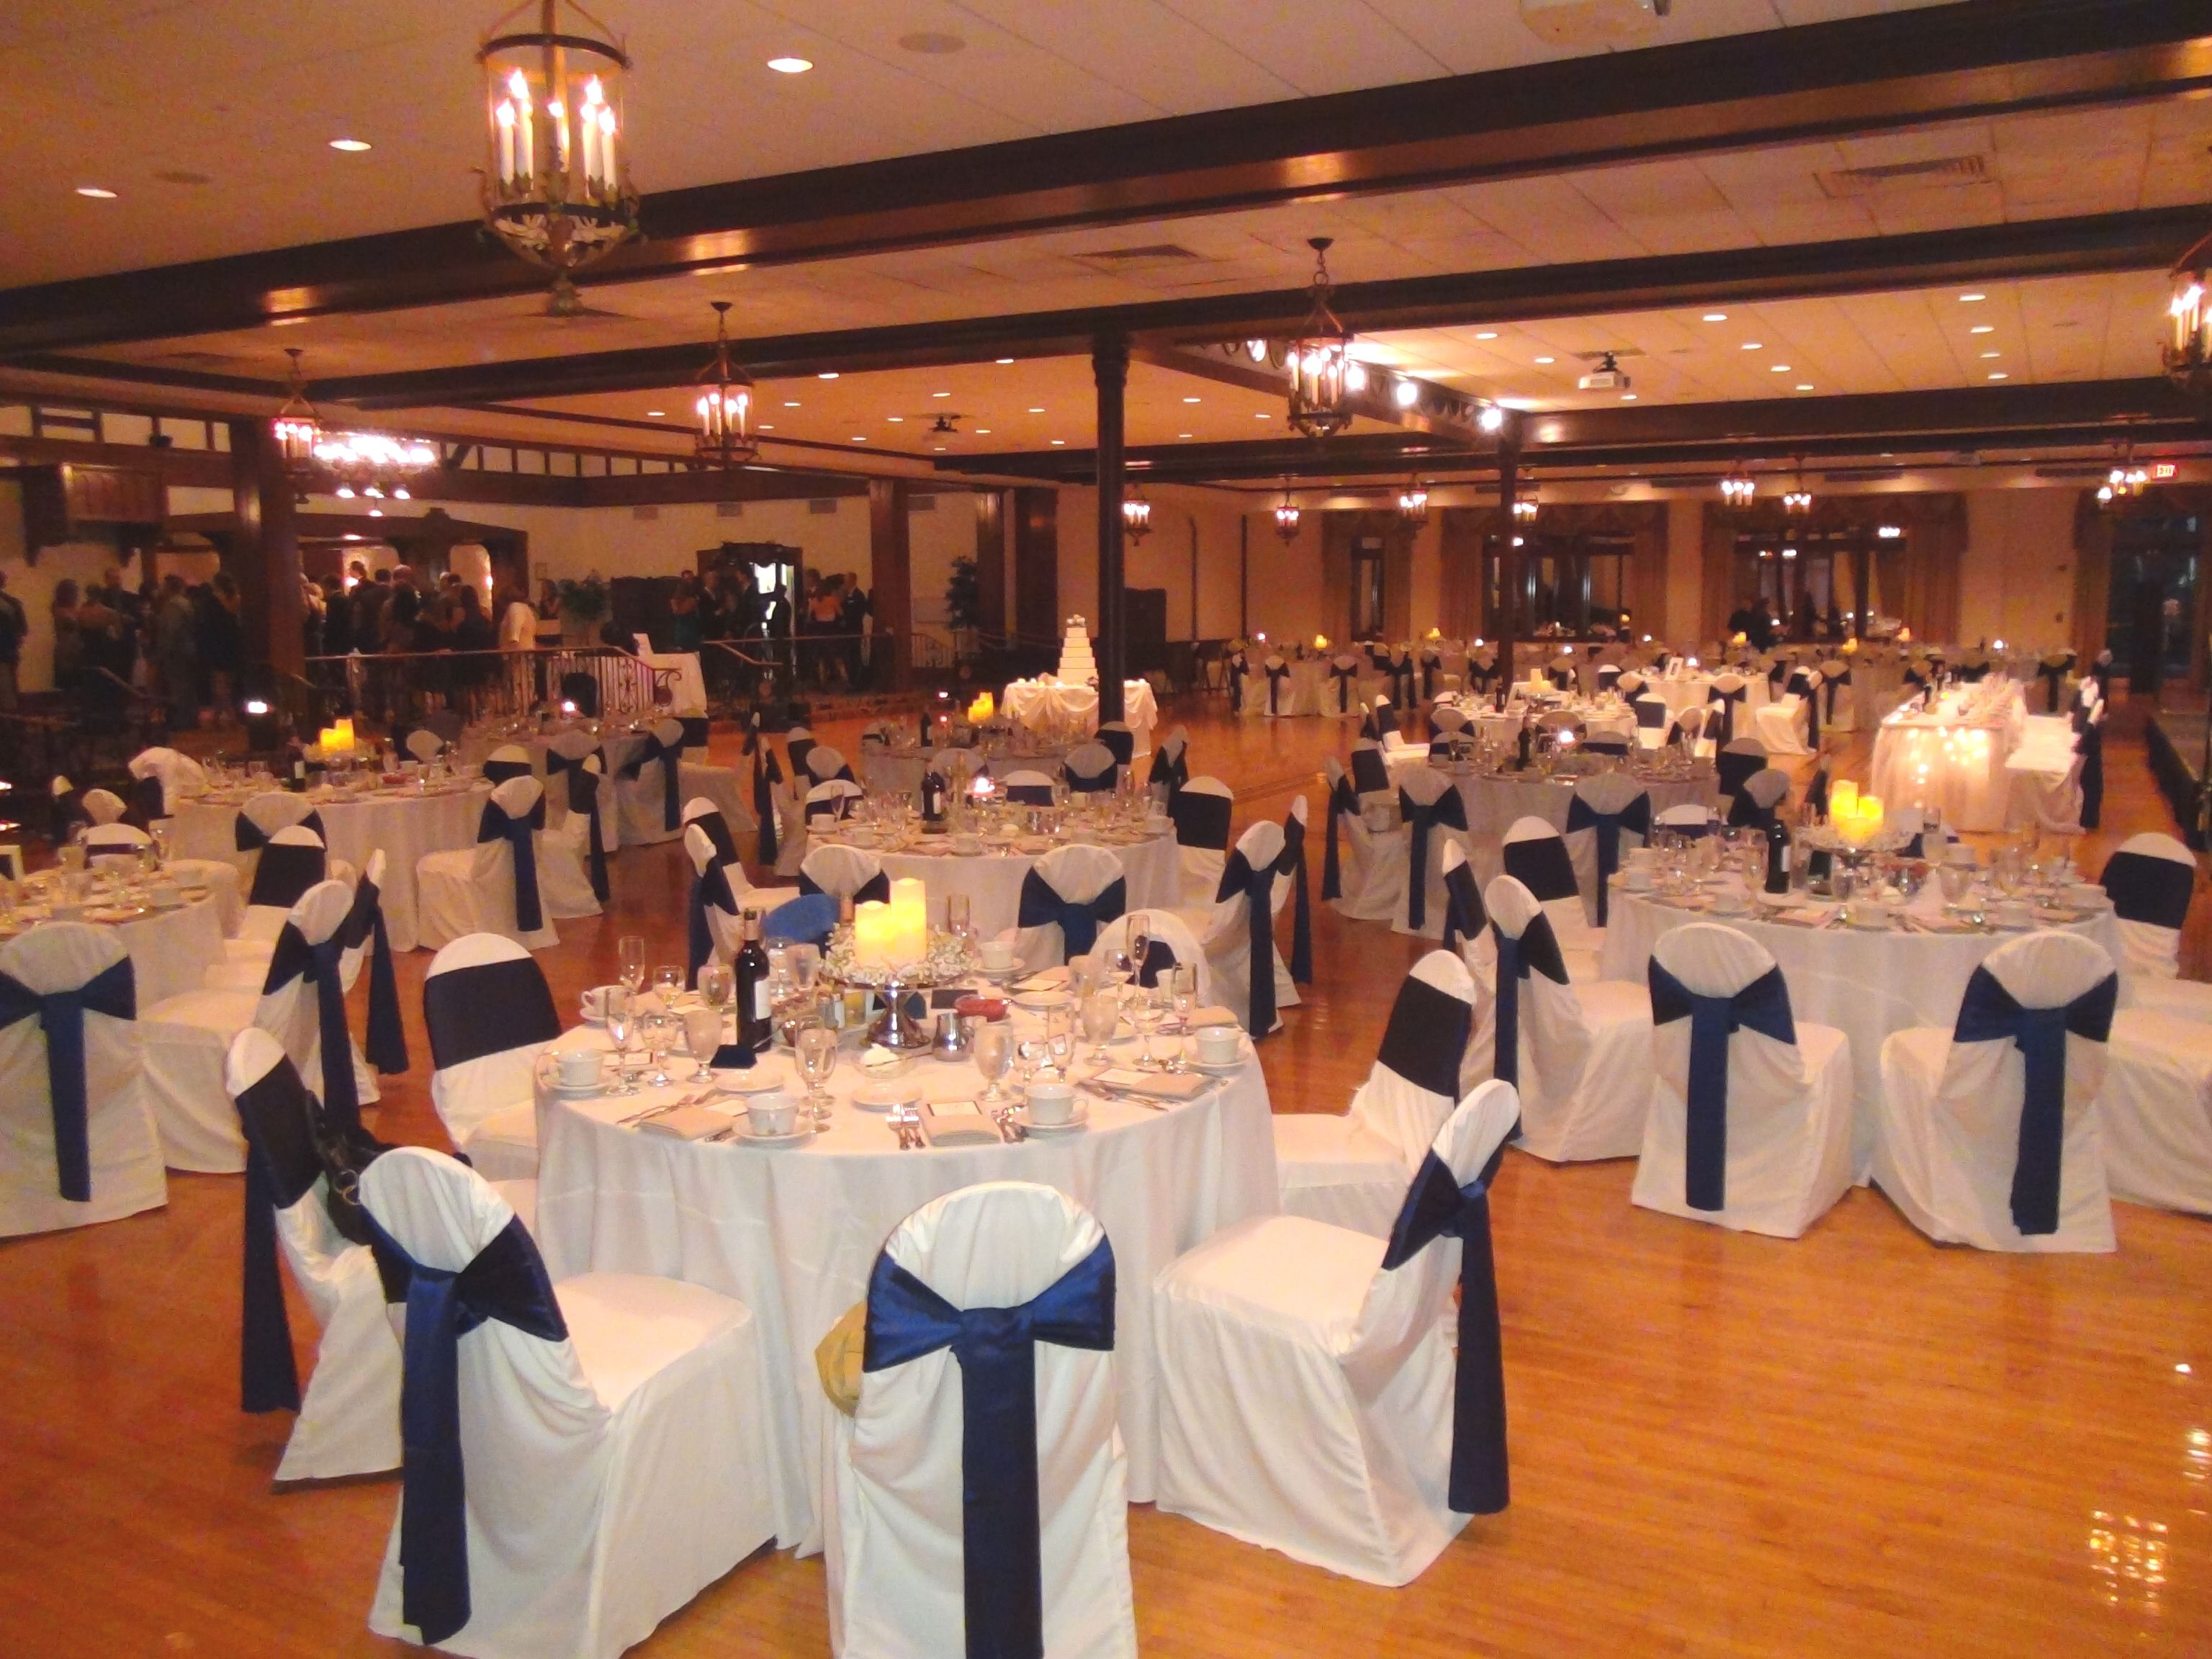 This Is The Ballroom At Chevy Chase Country Club The Ideal Chicago Wedding Dj Experience In The Heart O Chicago Wedding Wedding Dj Chevy Chase Country Club